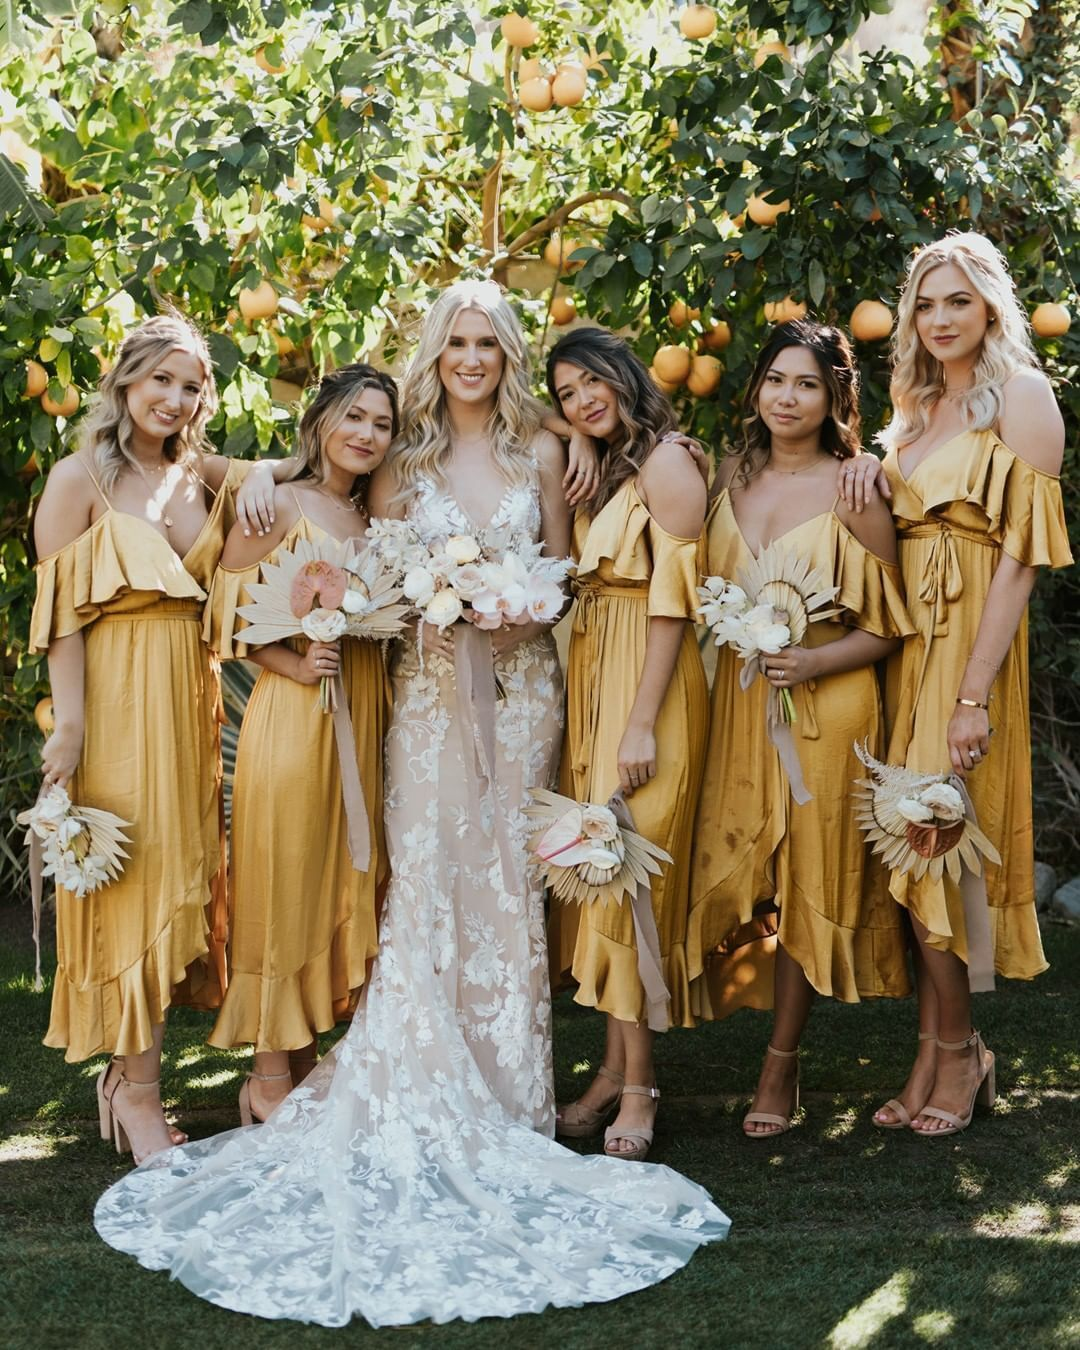 Having A Mustard Moment That S What We D Call A Striking Bridal Party Repost From Greenweddingshoes Phot Braut Bohmische Brautjungfernkleider Trauzeugin